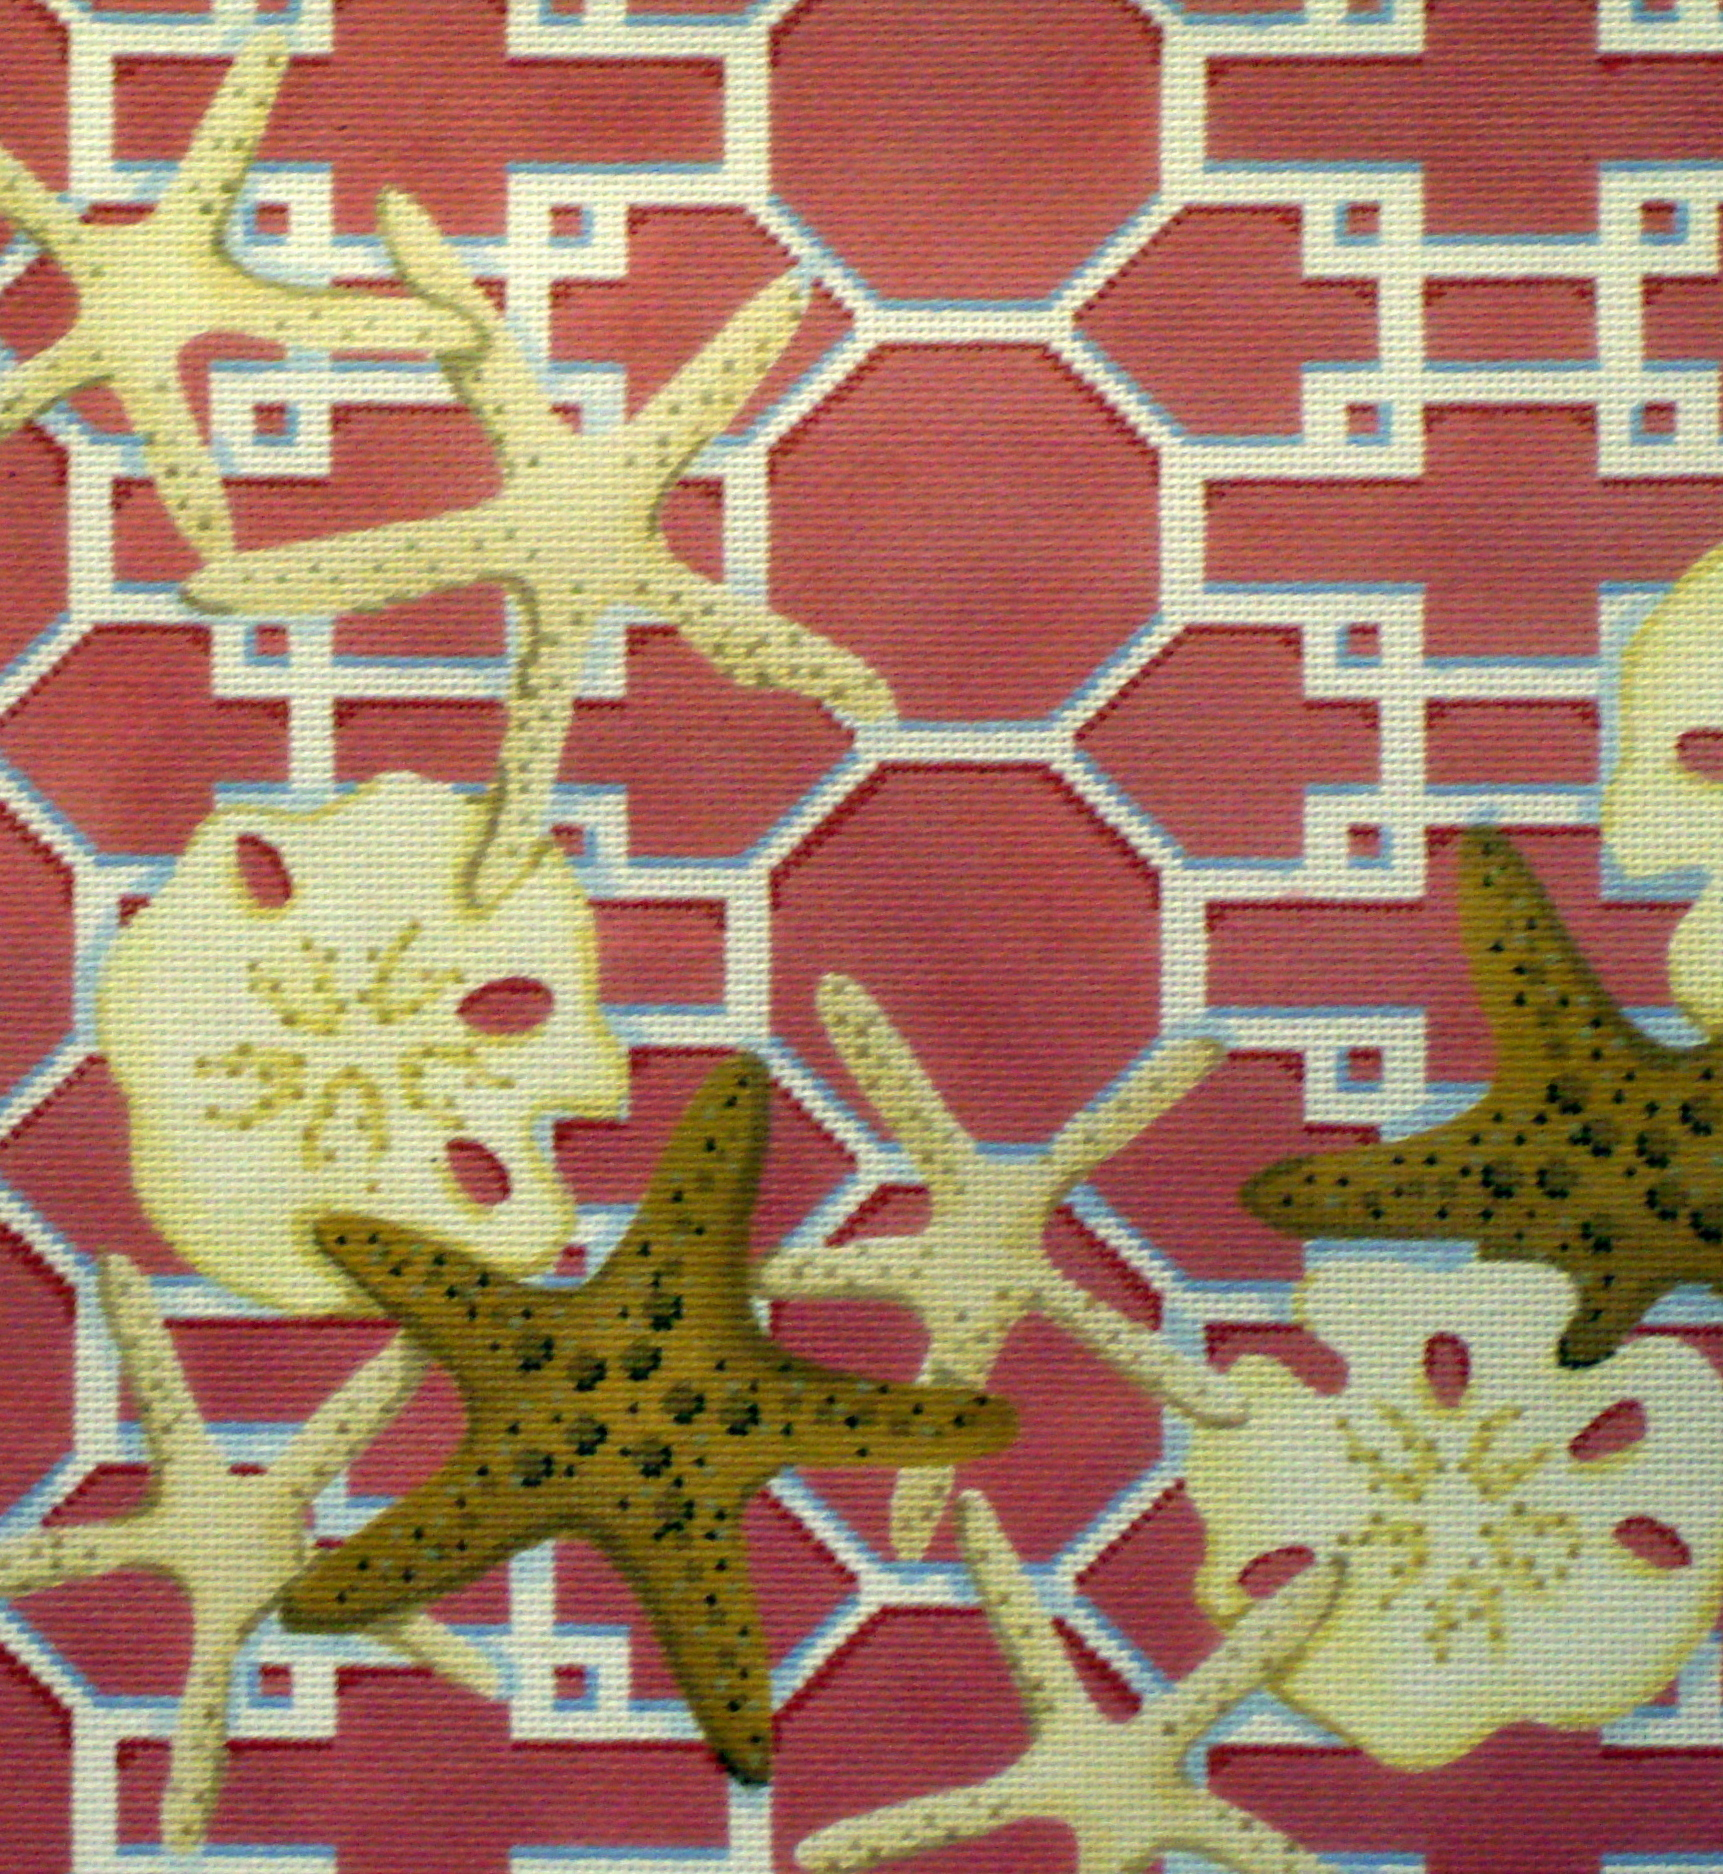 Starfish/Sand Dollar Lattice, Pink (Handpainted by Associated Talents) 18*D1307